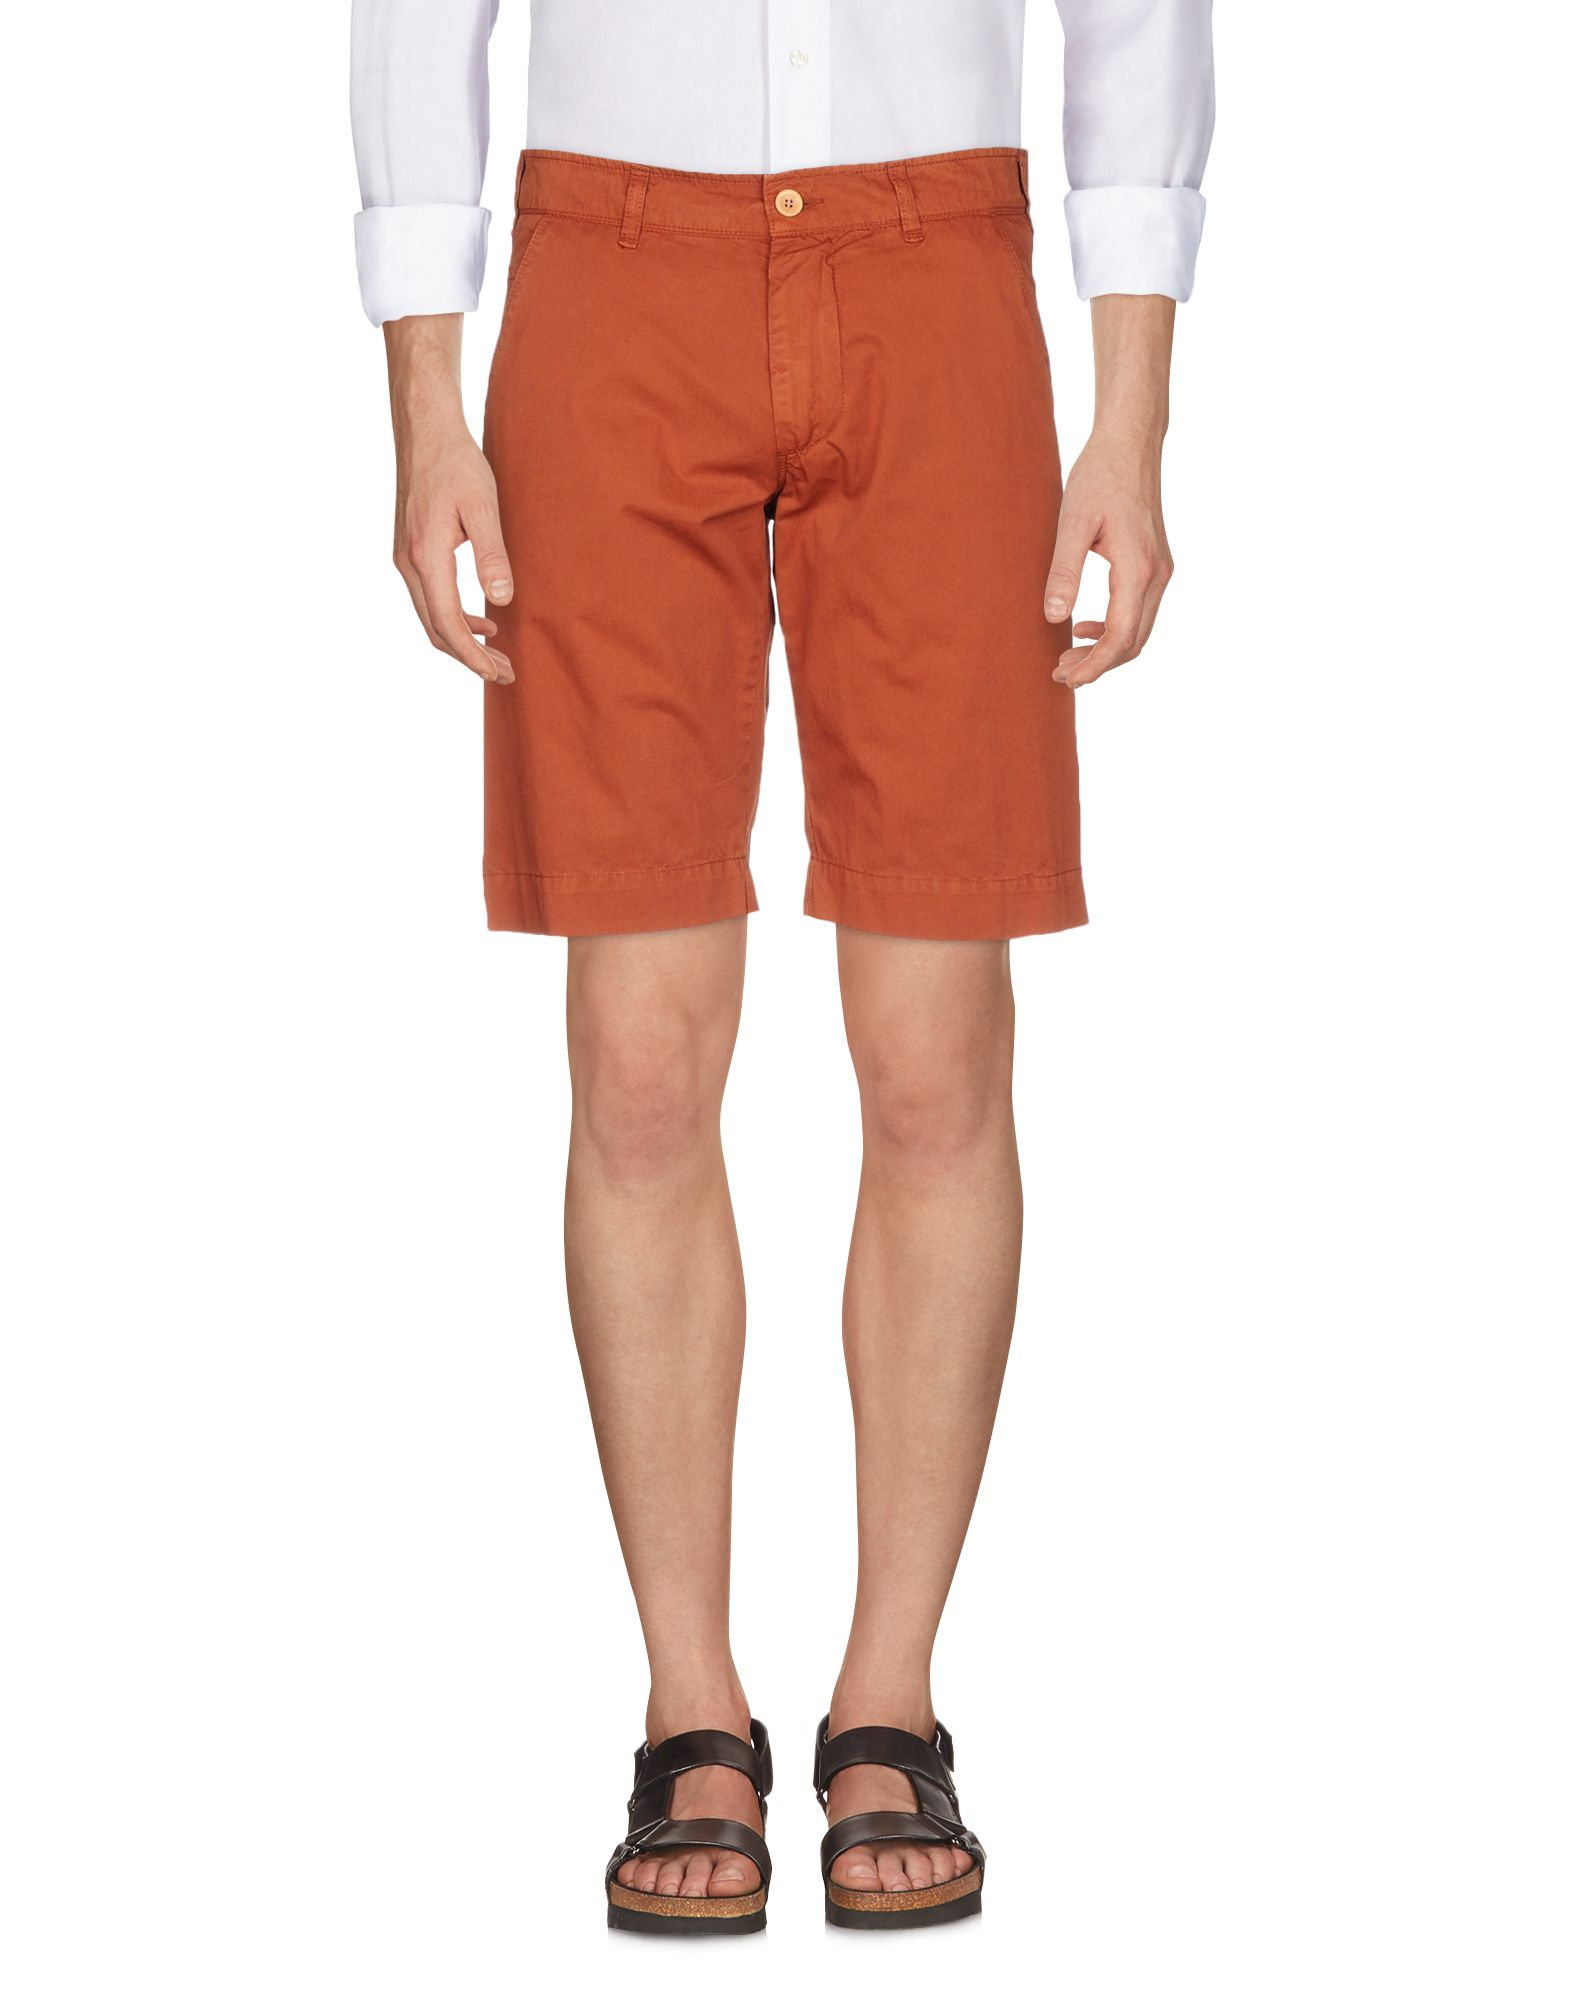 PERFECTION Shorts & Bermuda in Brown